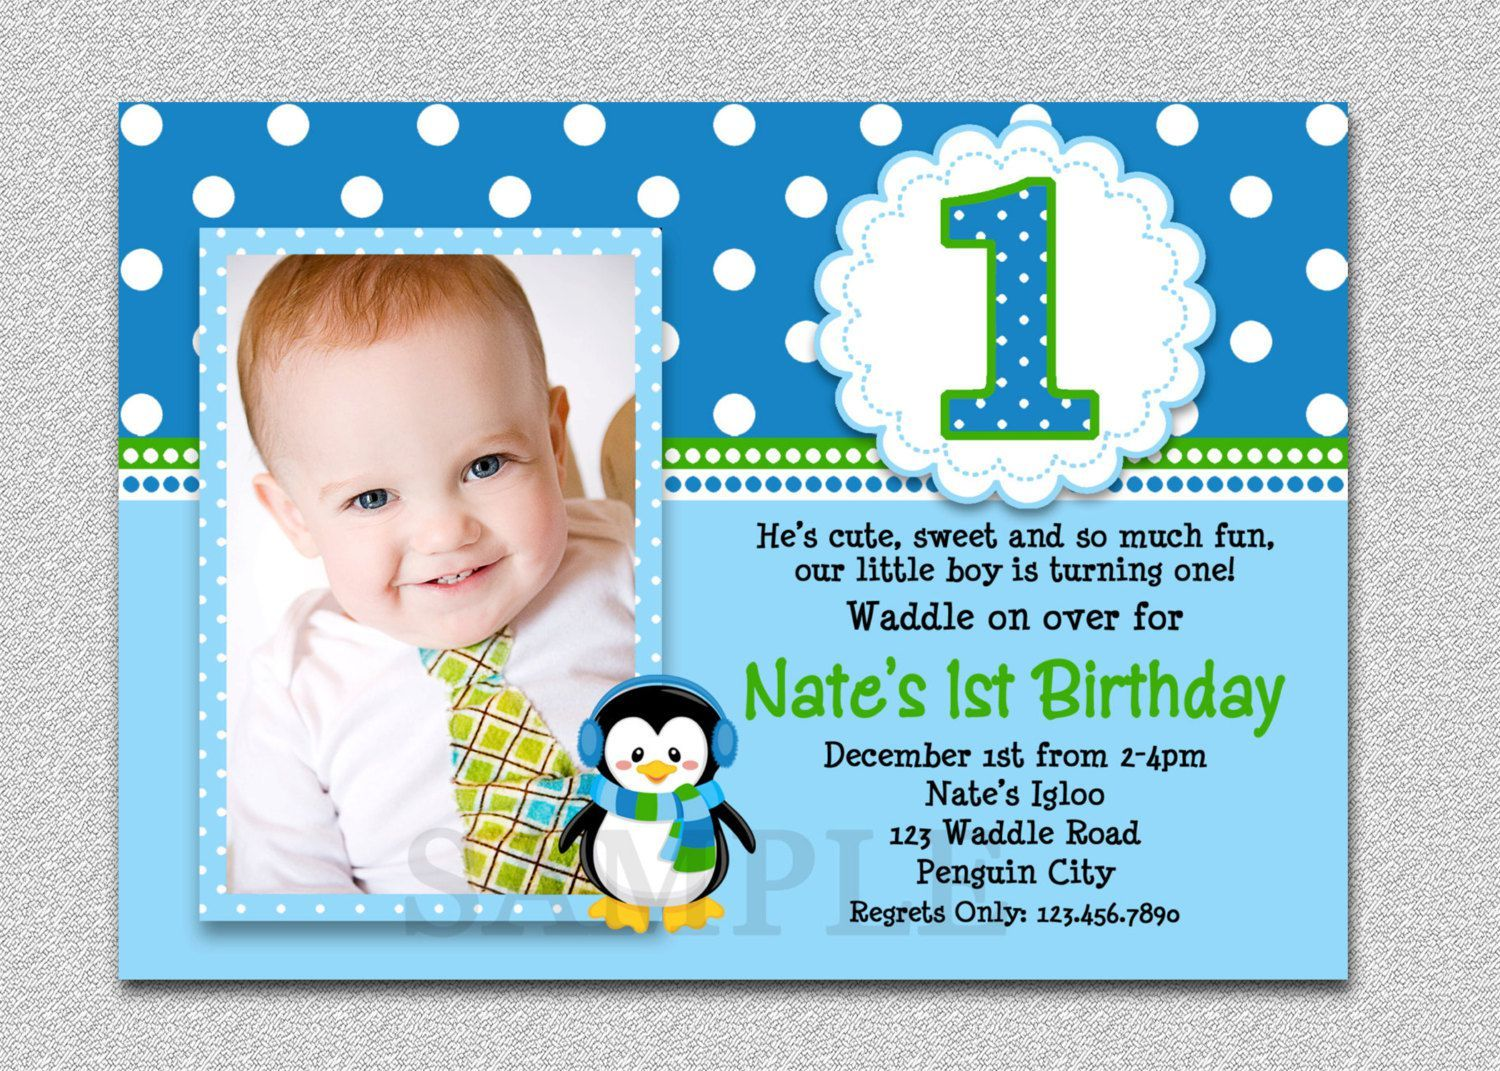 1st birthday and baptism combined invitations baptism birthday invitation card for boy concept bossy baby boy invitation card with smiley baby photos design alongside blue polka dot frames and round tenplate stopboris Images